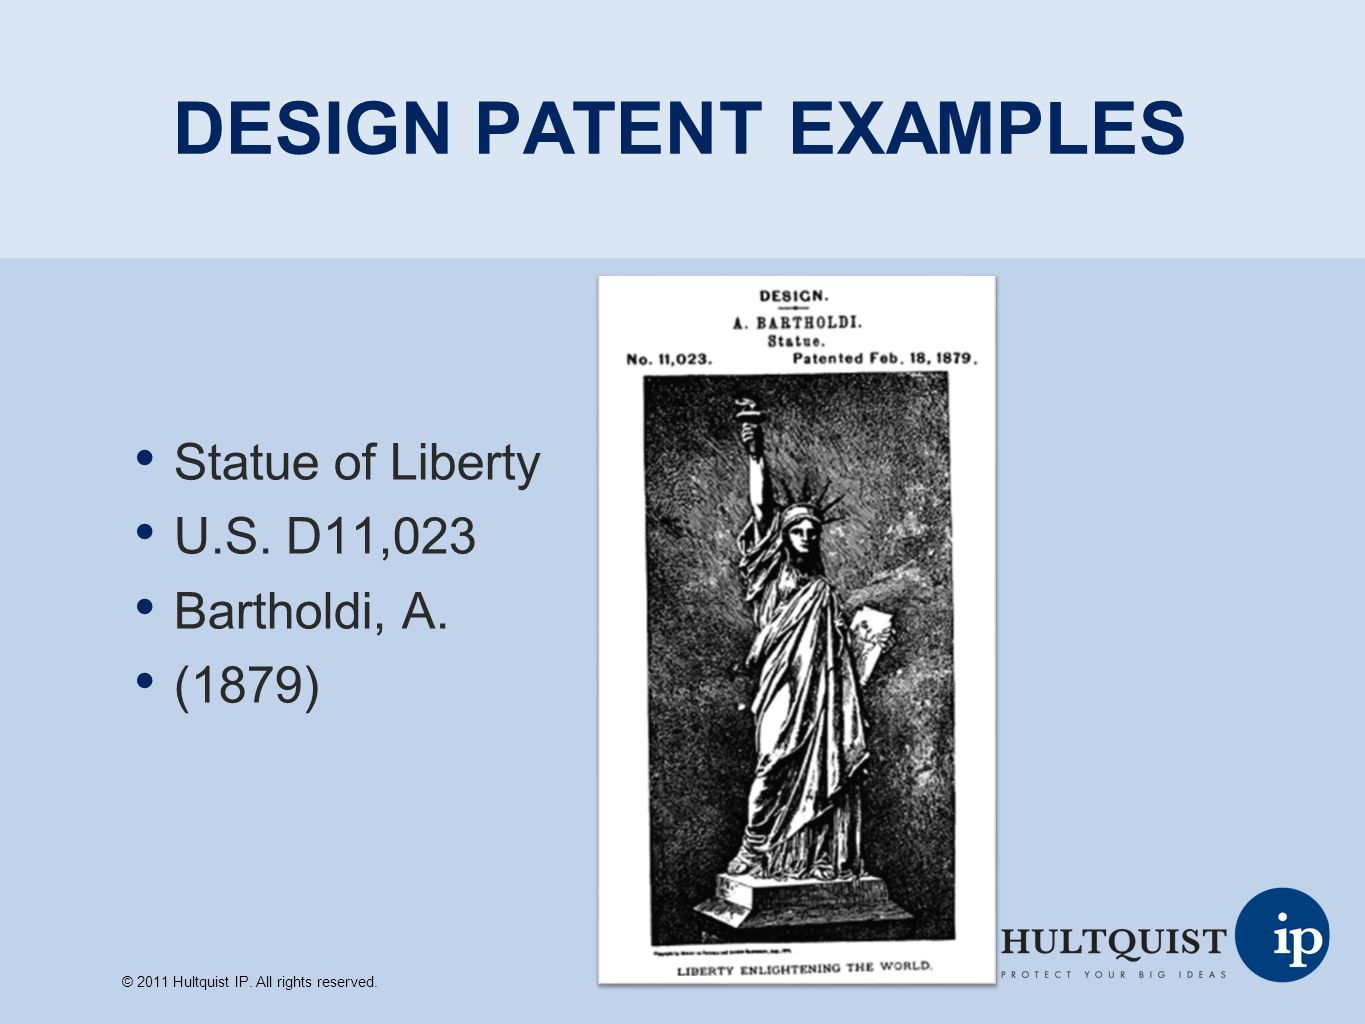 DESIGN PATENT EXAMPLES Statue of Liberty U.S. D11,023 Bartholdi, A. (1879) © 2011 Hultquist IP. All rights reserved.